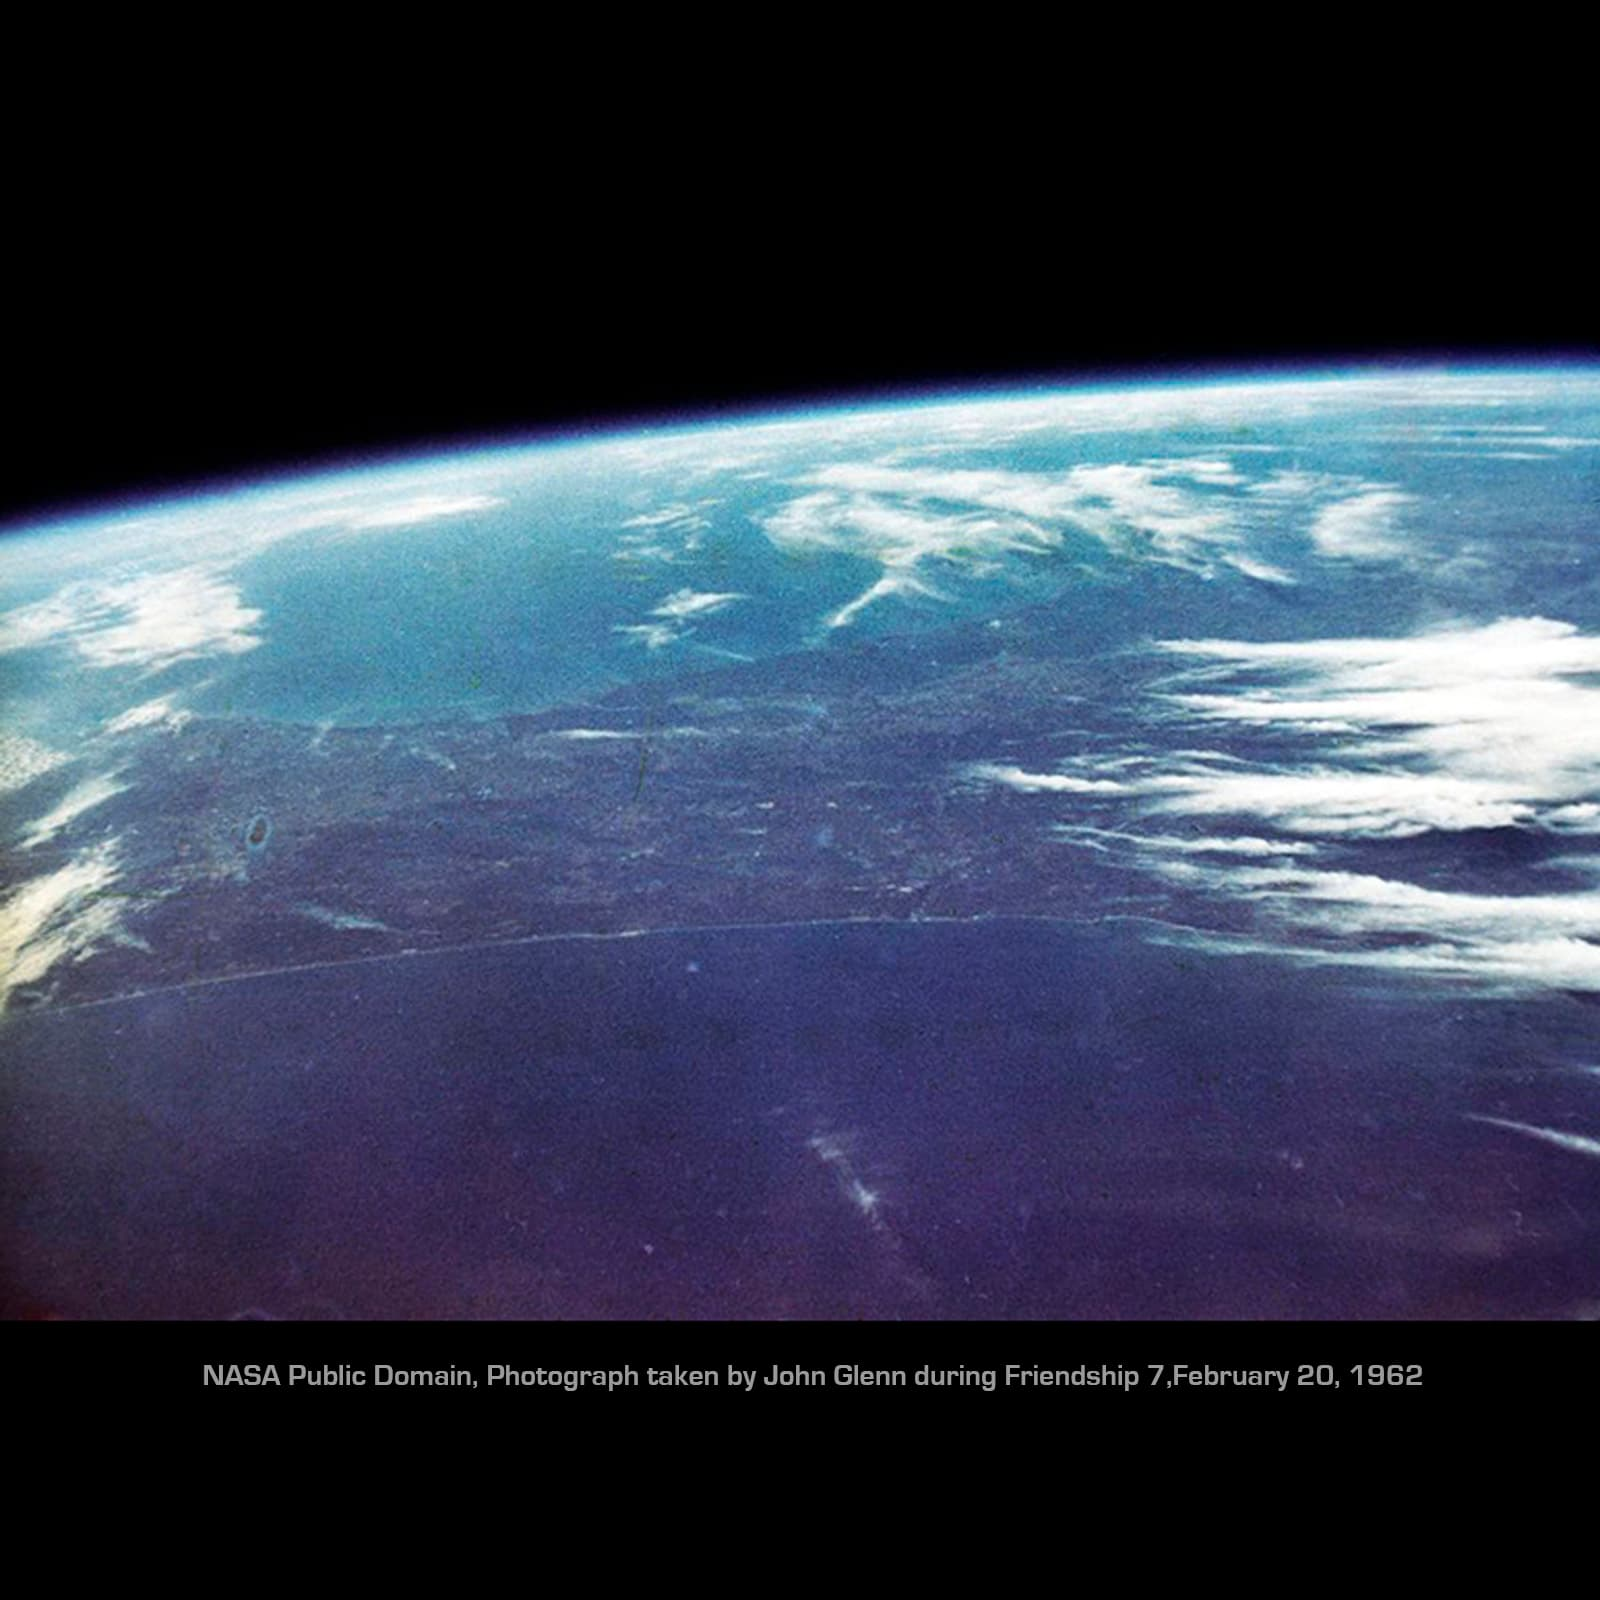 Astronaut John Glenn took a Minolta Hi-Matic 35mm up into space on Friendship 7 in 1962. He became the first human to take color still photographs of the Earth from space. NASA public domain.